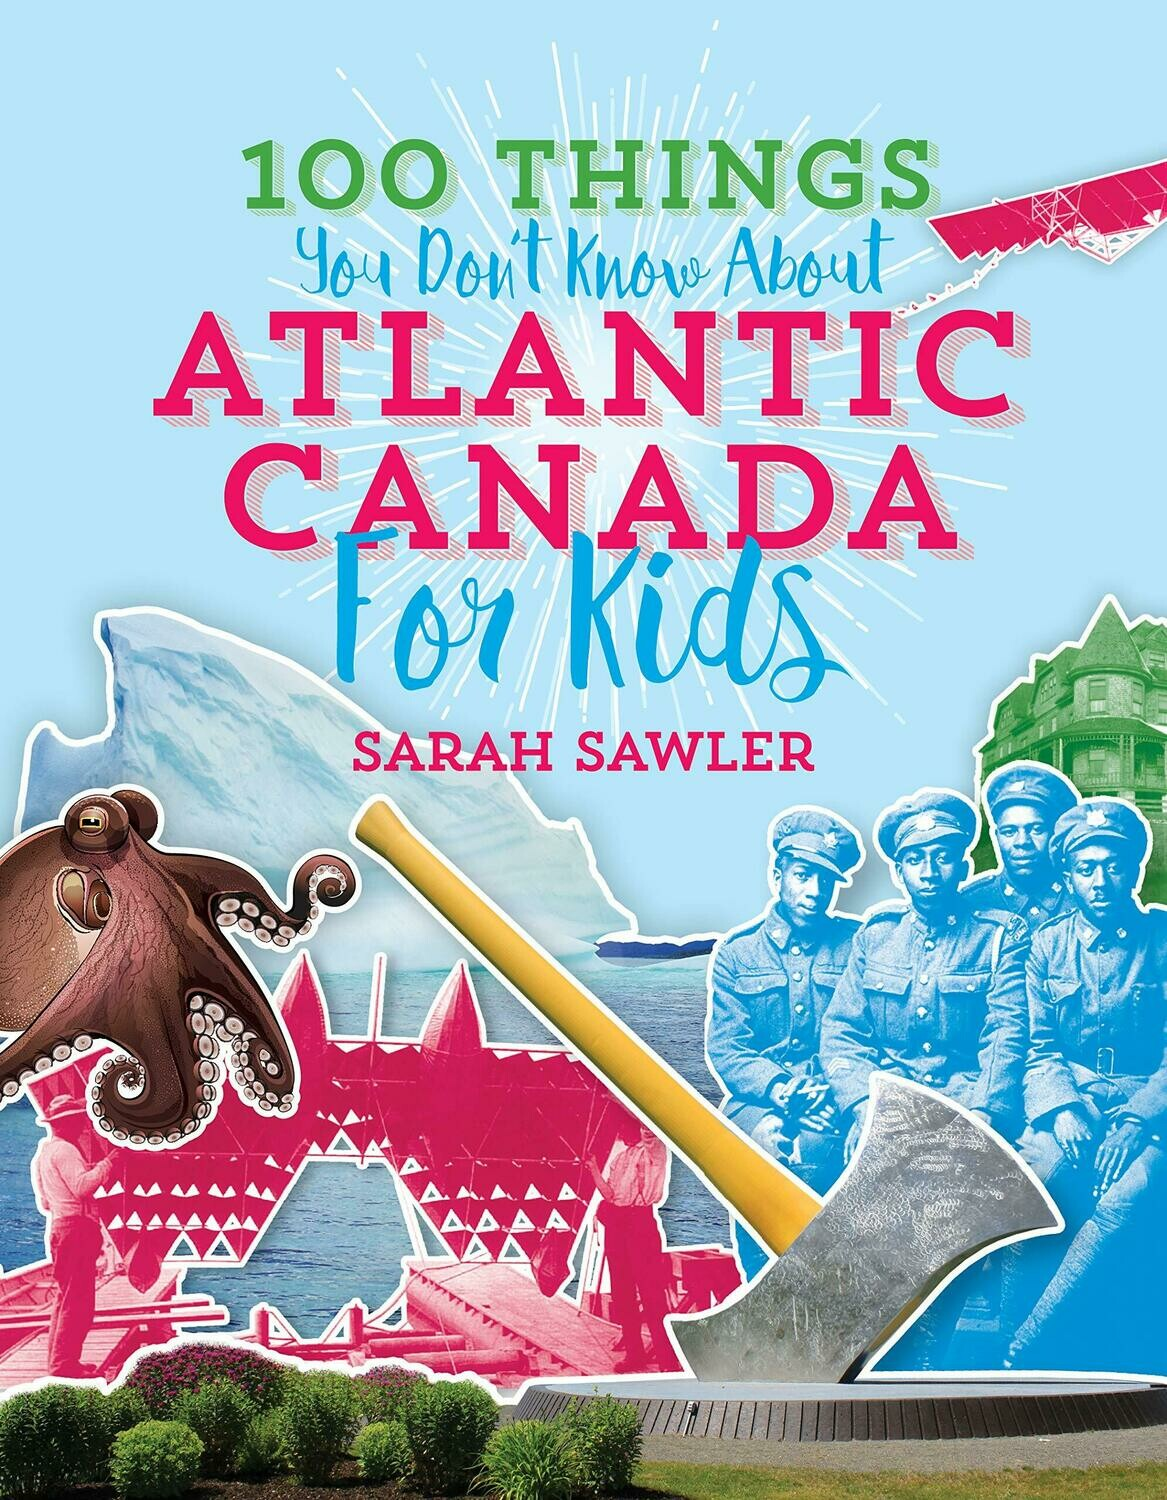 100 Things You Didn't Know About Atlantic Canada